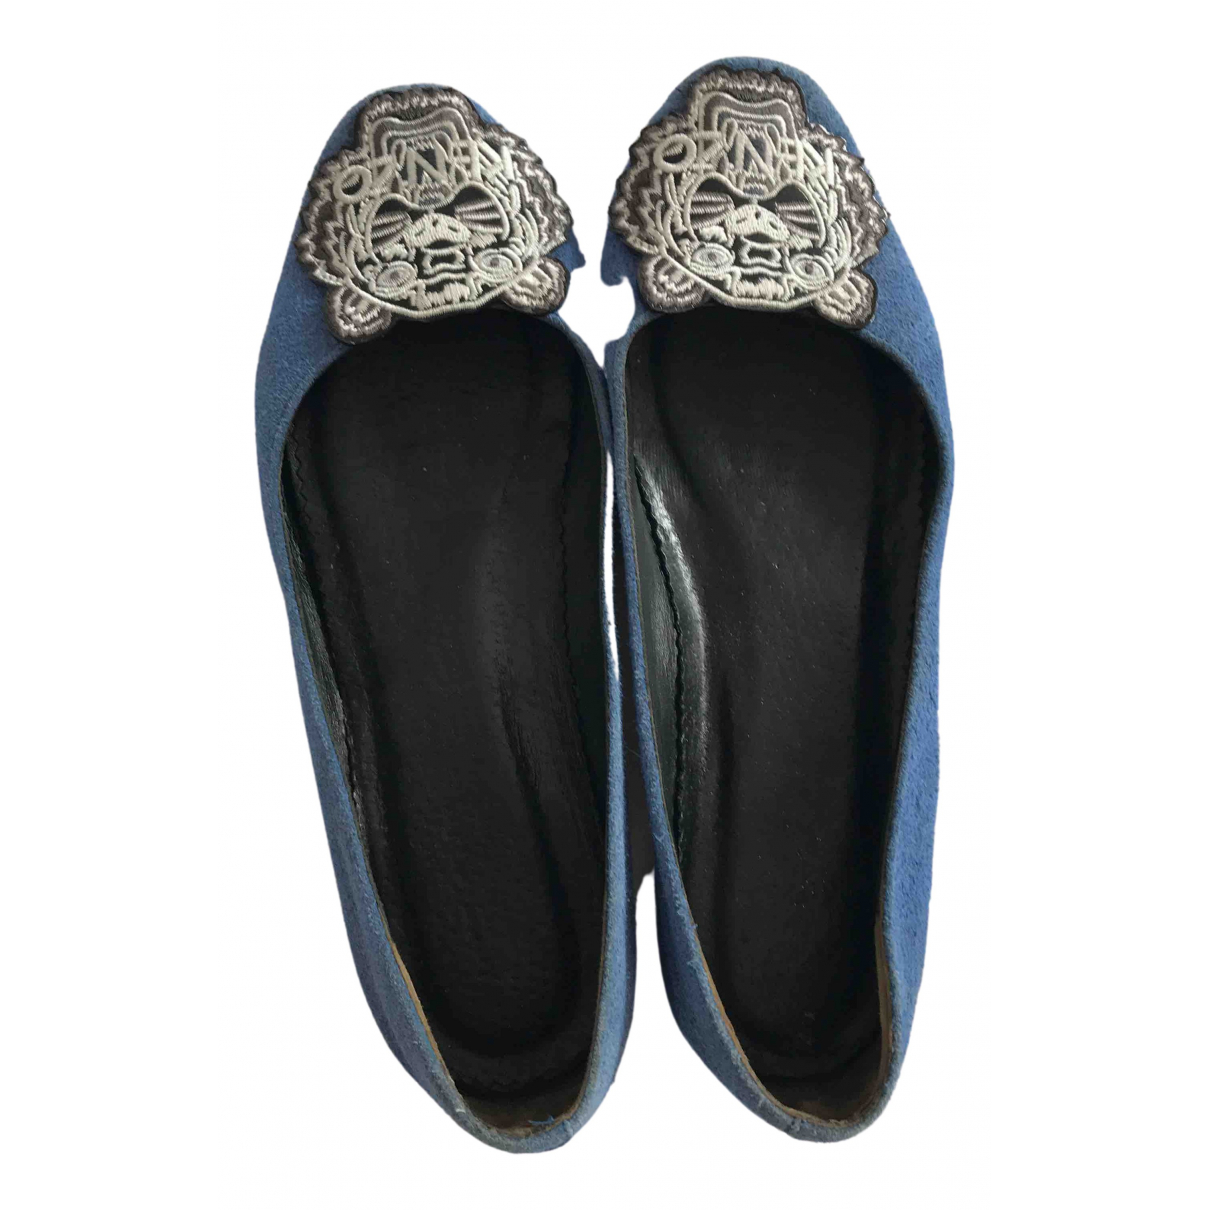 Kenzo N Blue Suede Ballet flats for Women 37.5 EU